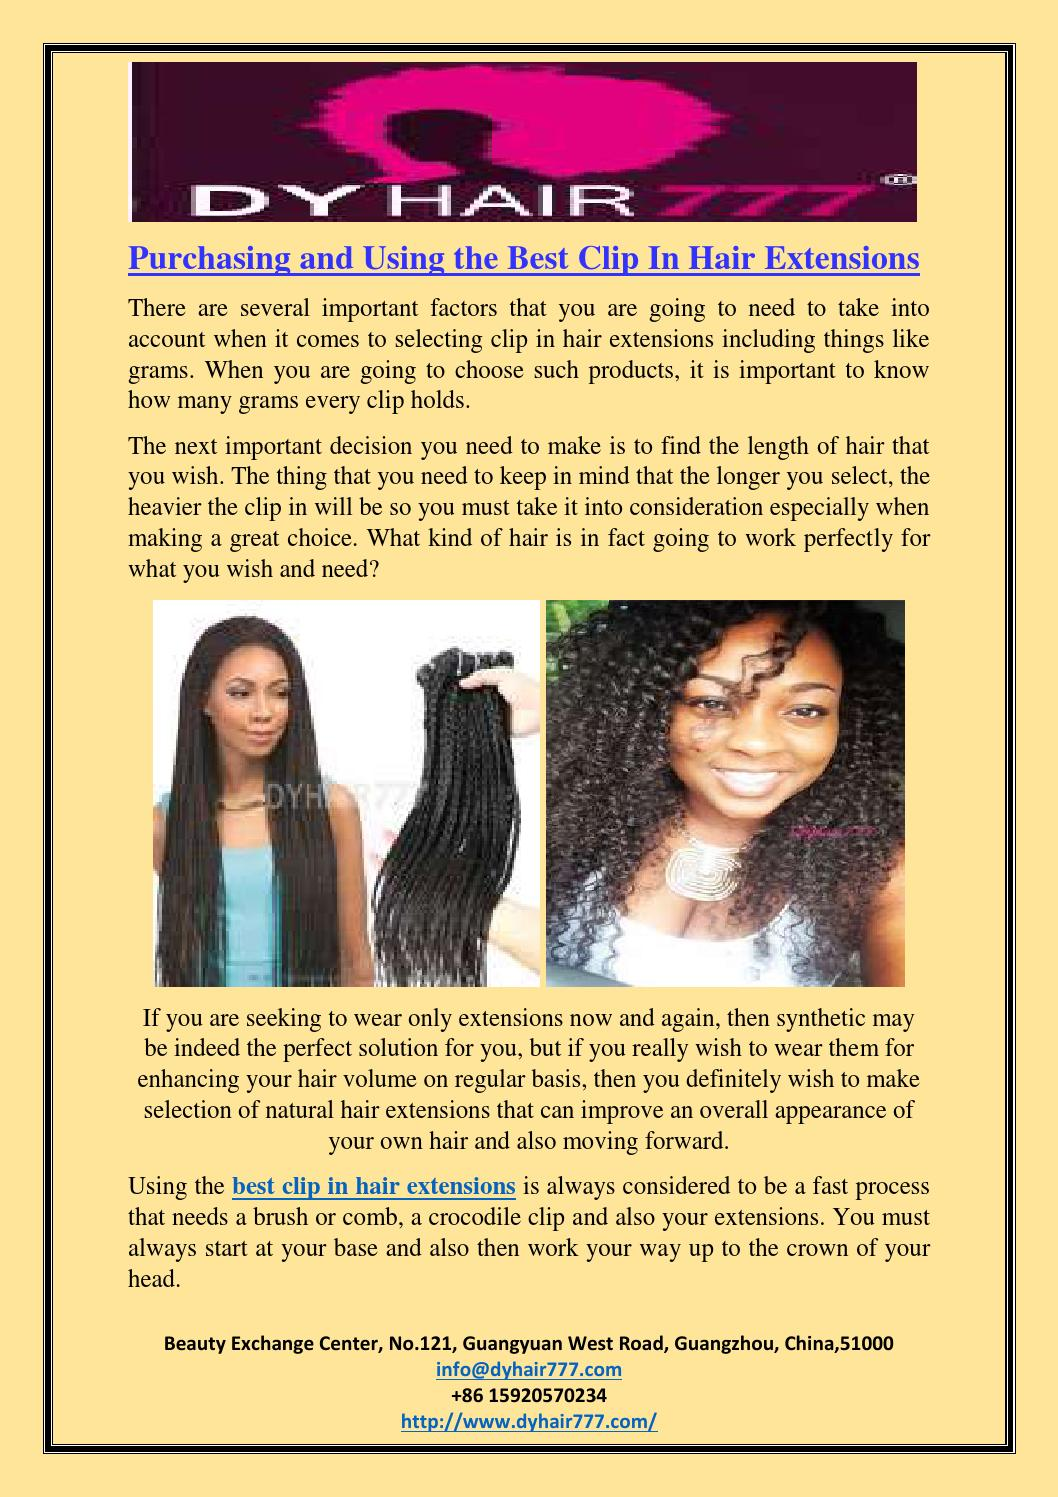 Purchasing And Using The Best Clip In Hair Extensions By Dy Hair777